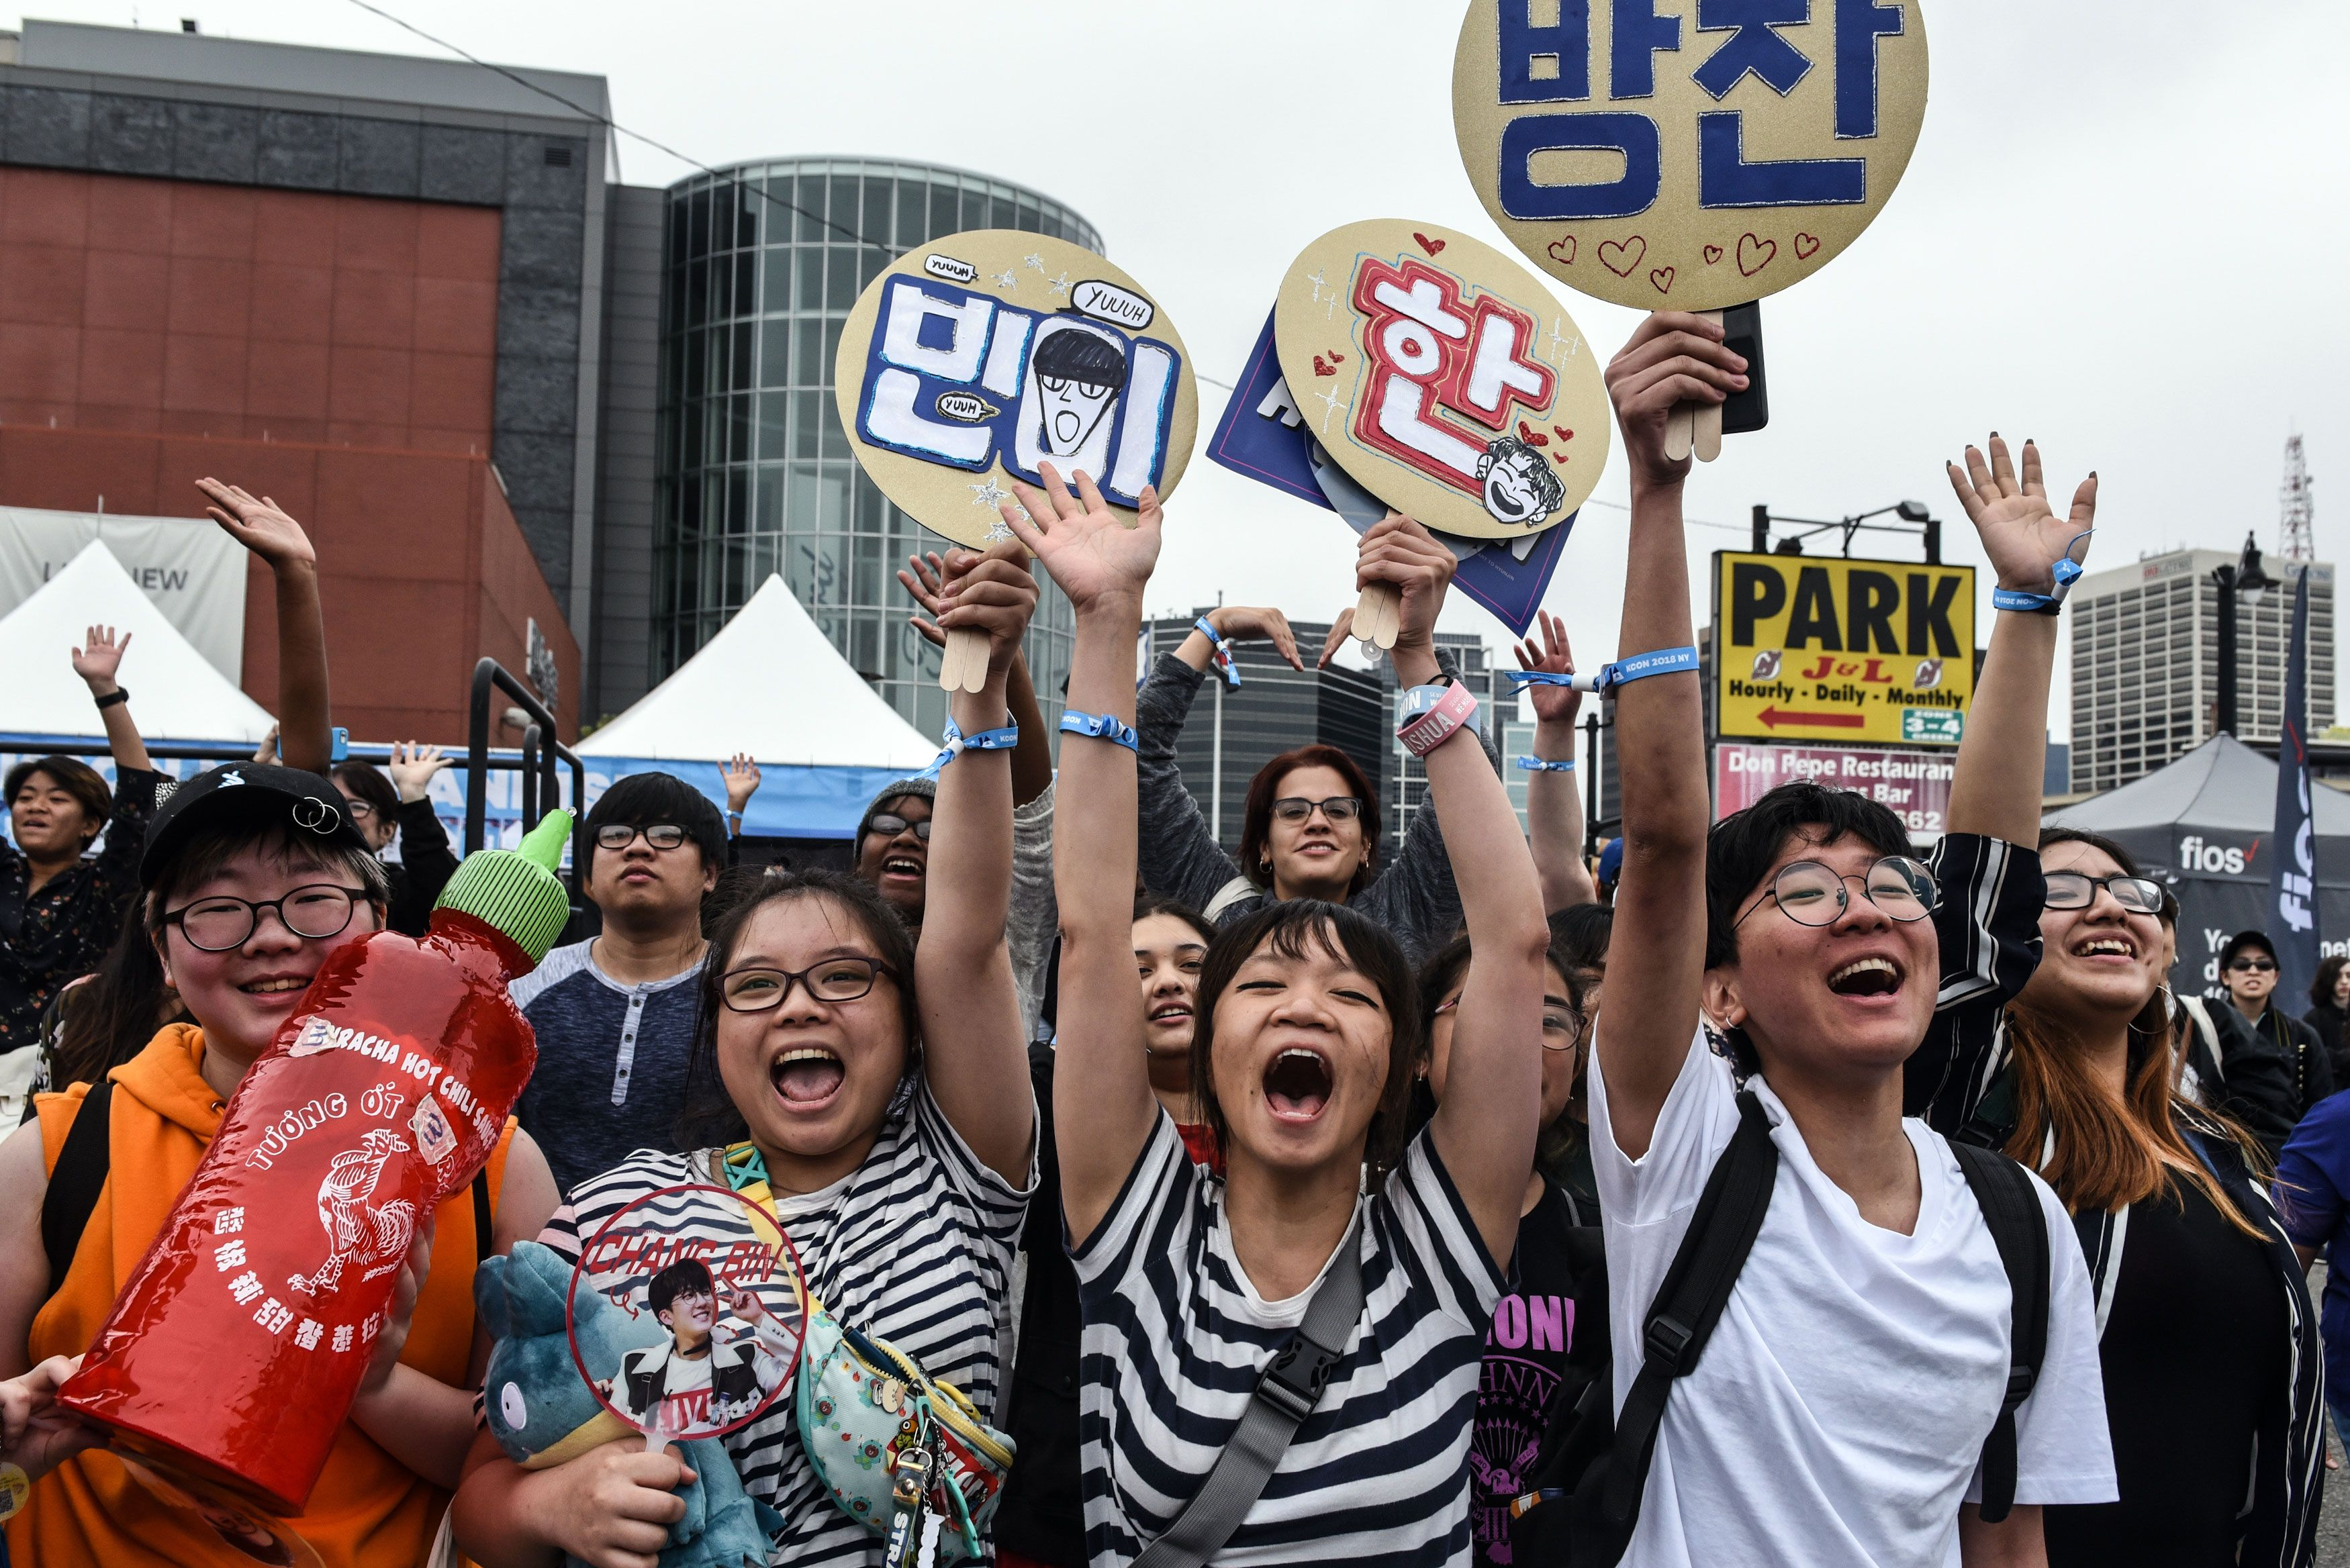 NEWARK, NJ - JUNE 23: Fans of Korean pop music attend a convention, called Kcon, that brings together some of the most popular pop bands from Korea on June 23, 2018 in Newark, New Jersey. This Korean music convention has been held annually in North America since 2012. (Photo by Stephanie Keith/Getty Images)